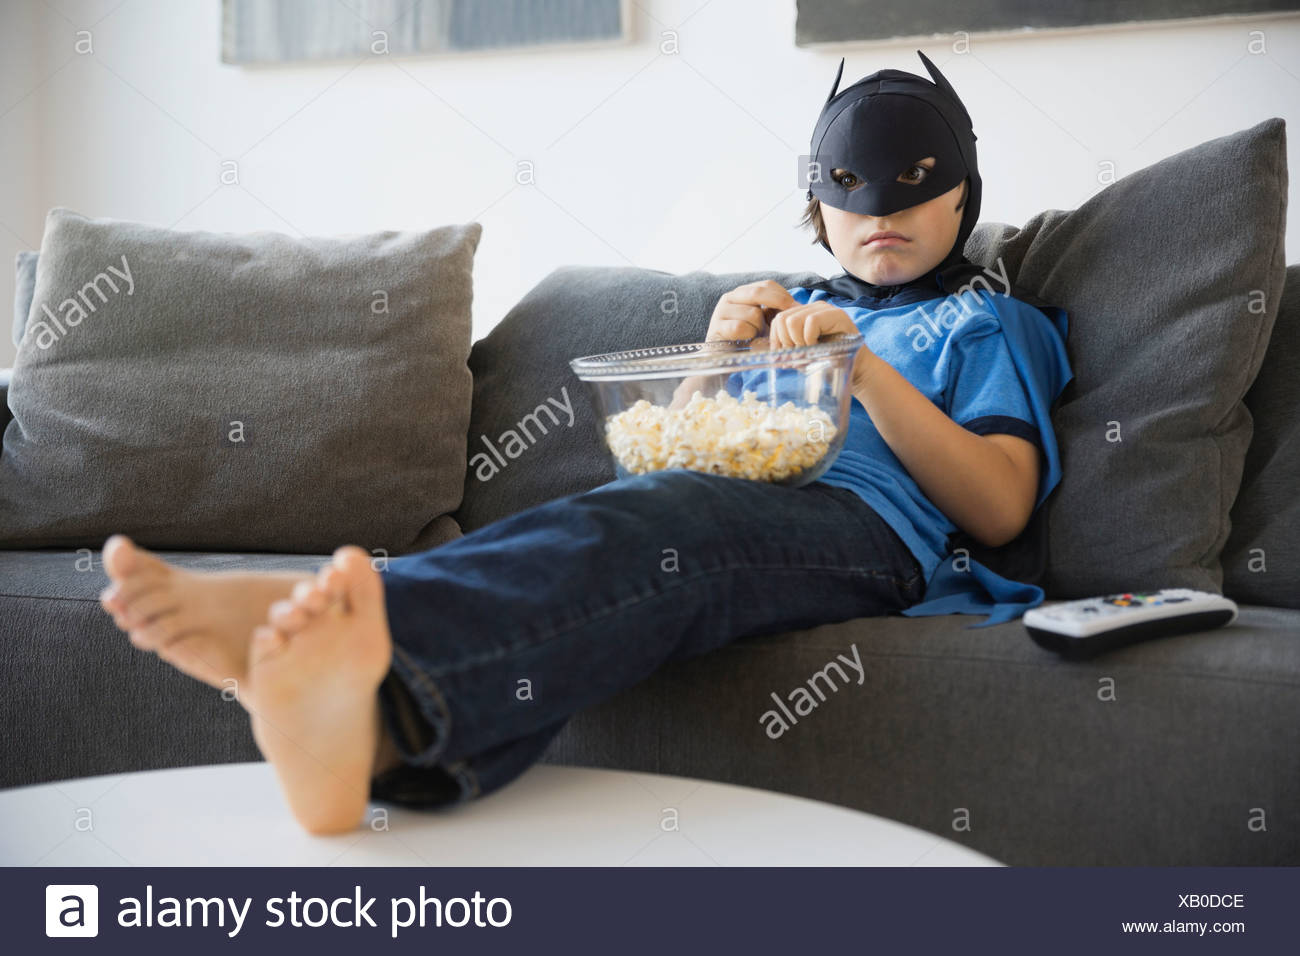 Boy dressed in superhero costume watching TV at home - Stock Image